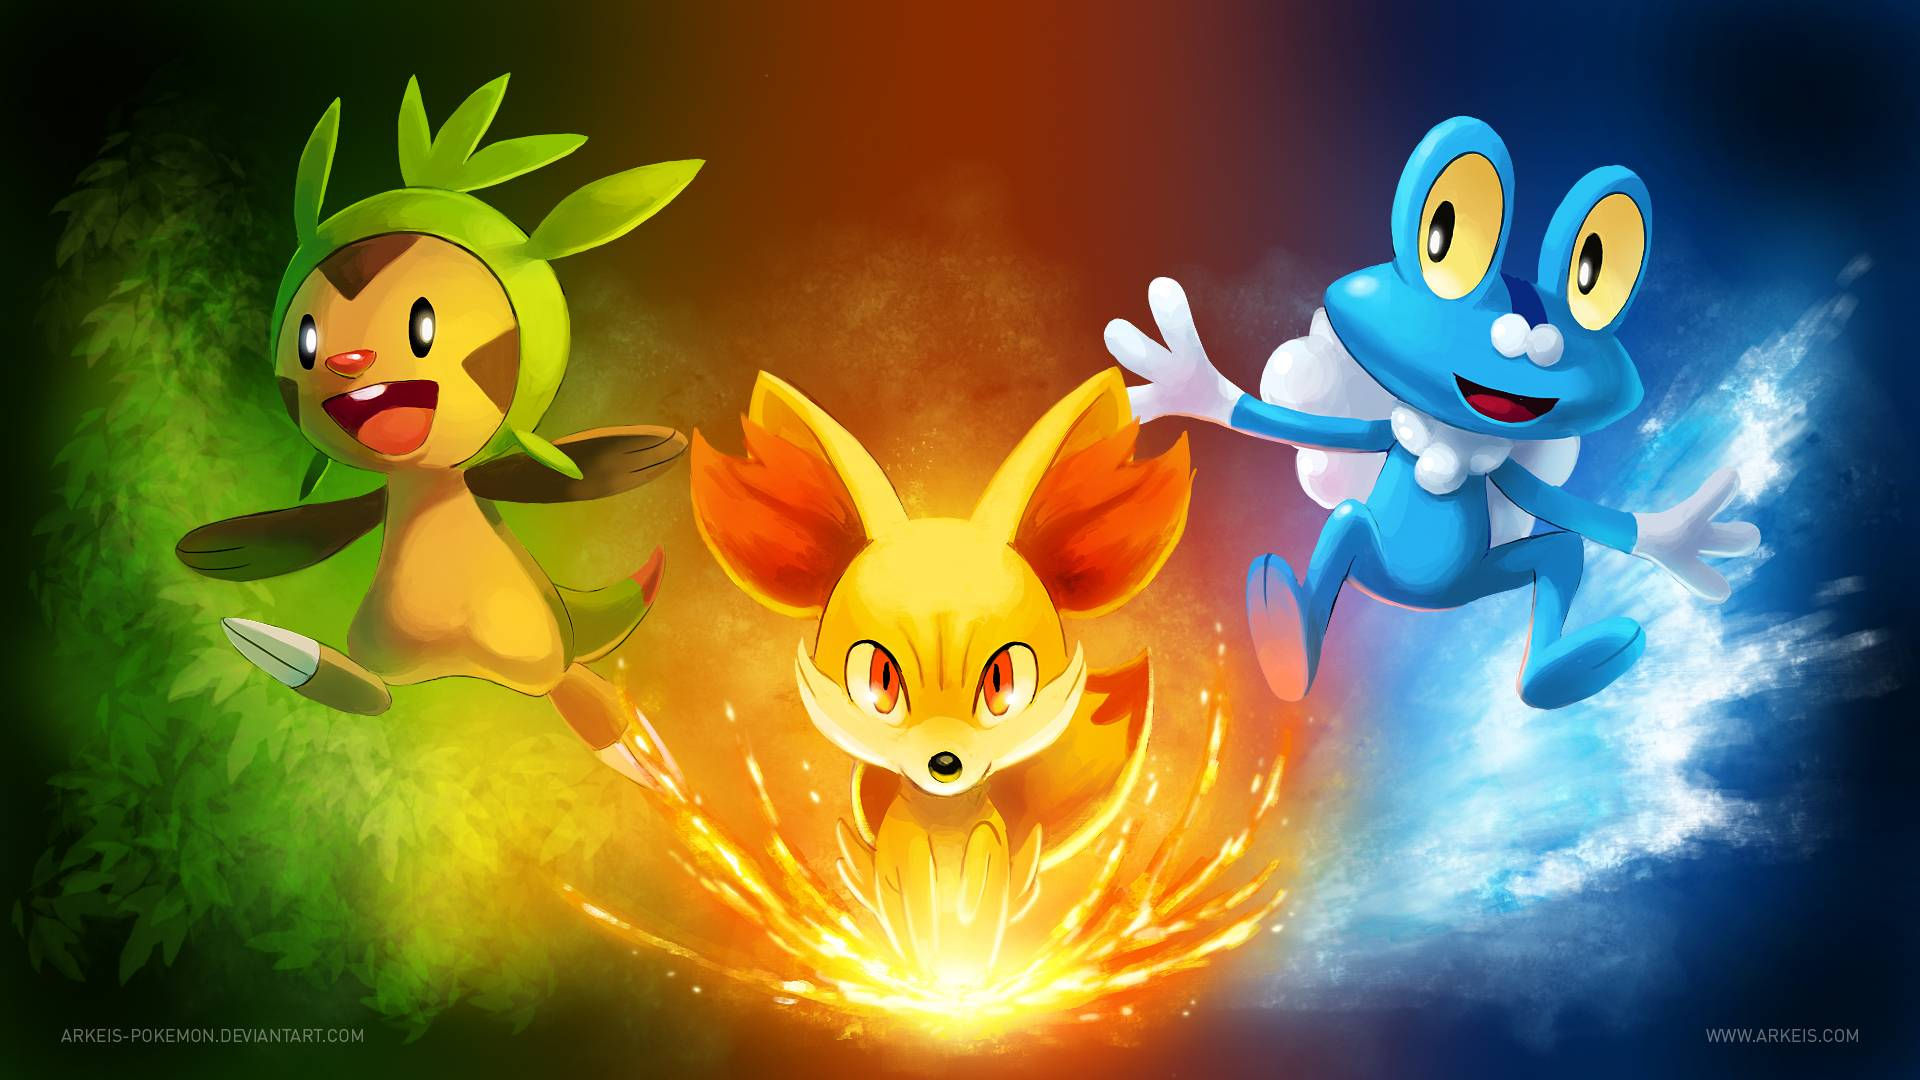 Pokemon HD Wallpapers - Wallpaper Cave